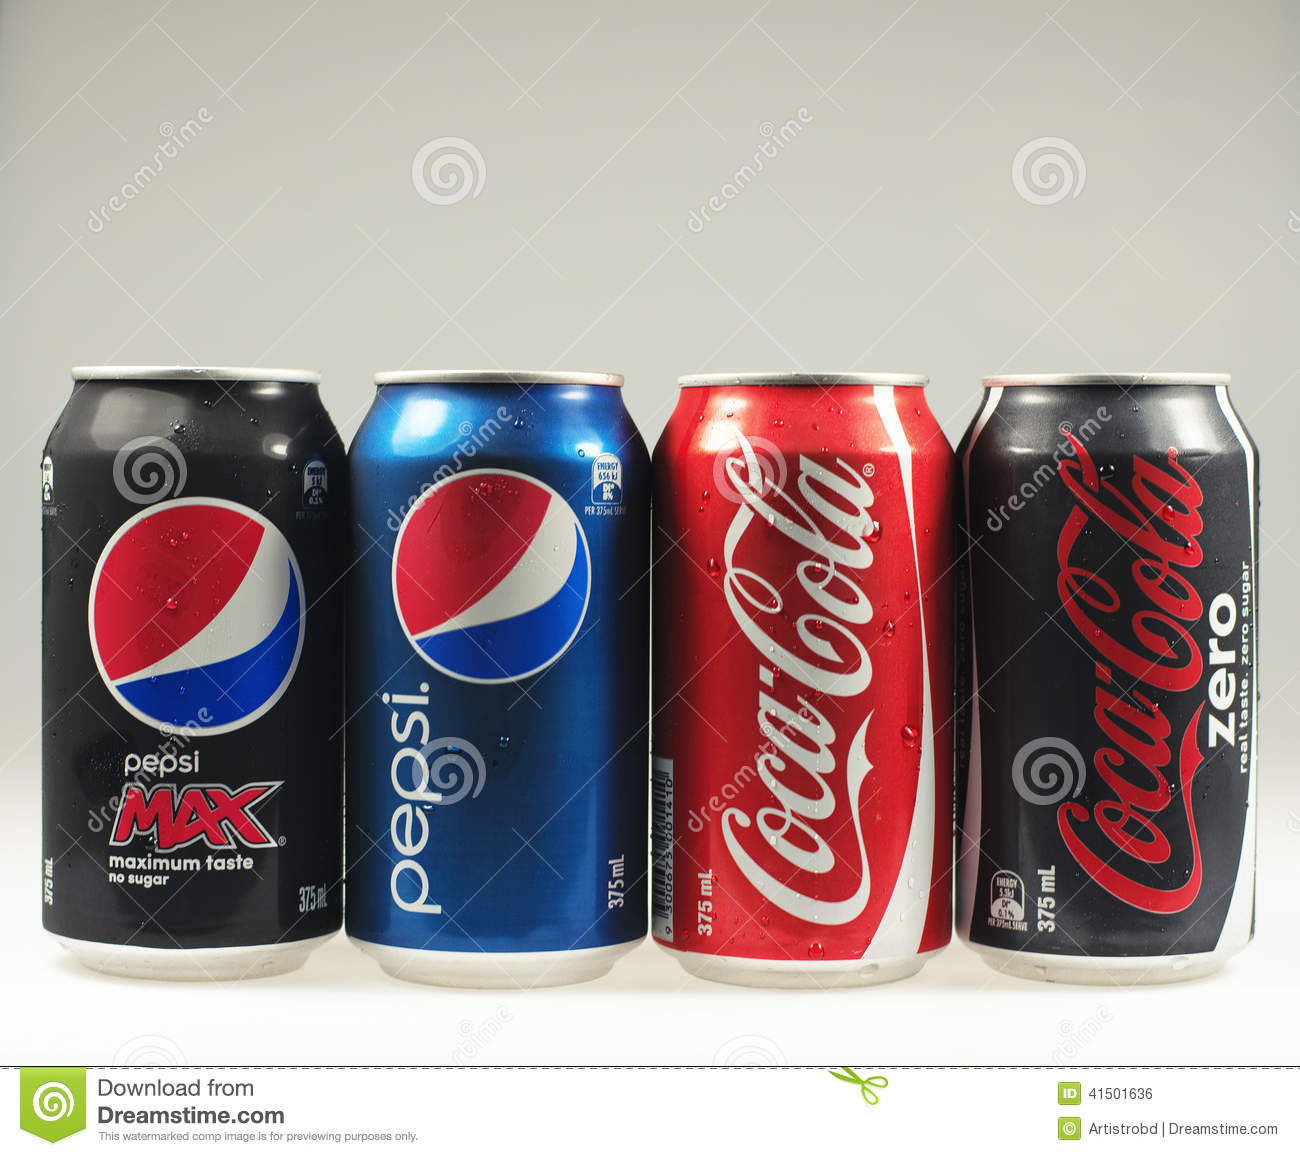 procedures used by pepsi bottlers australia However, her video for like a prayer, a song that was used in a pepsi commercial, was deemed blasphemous and brought accusations of anti-catholicism against the company.